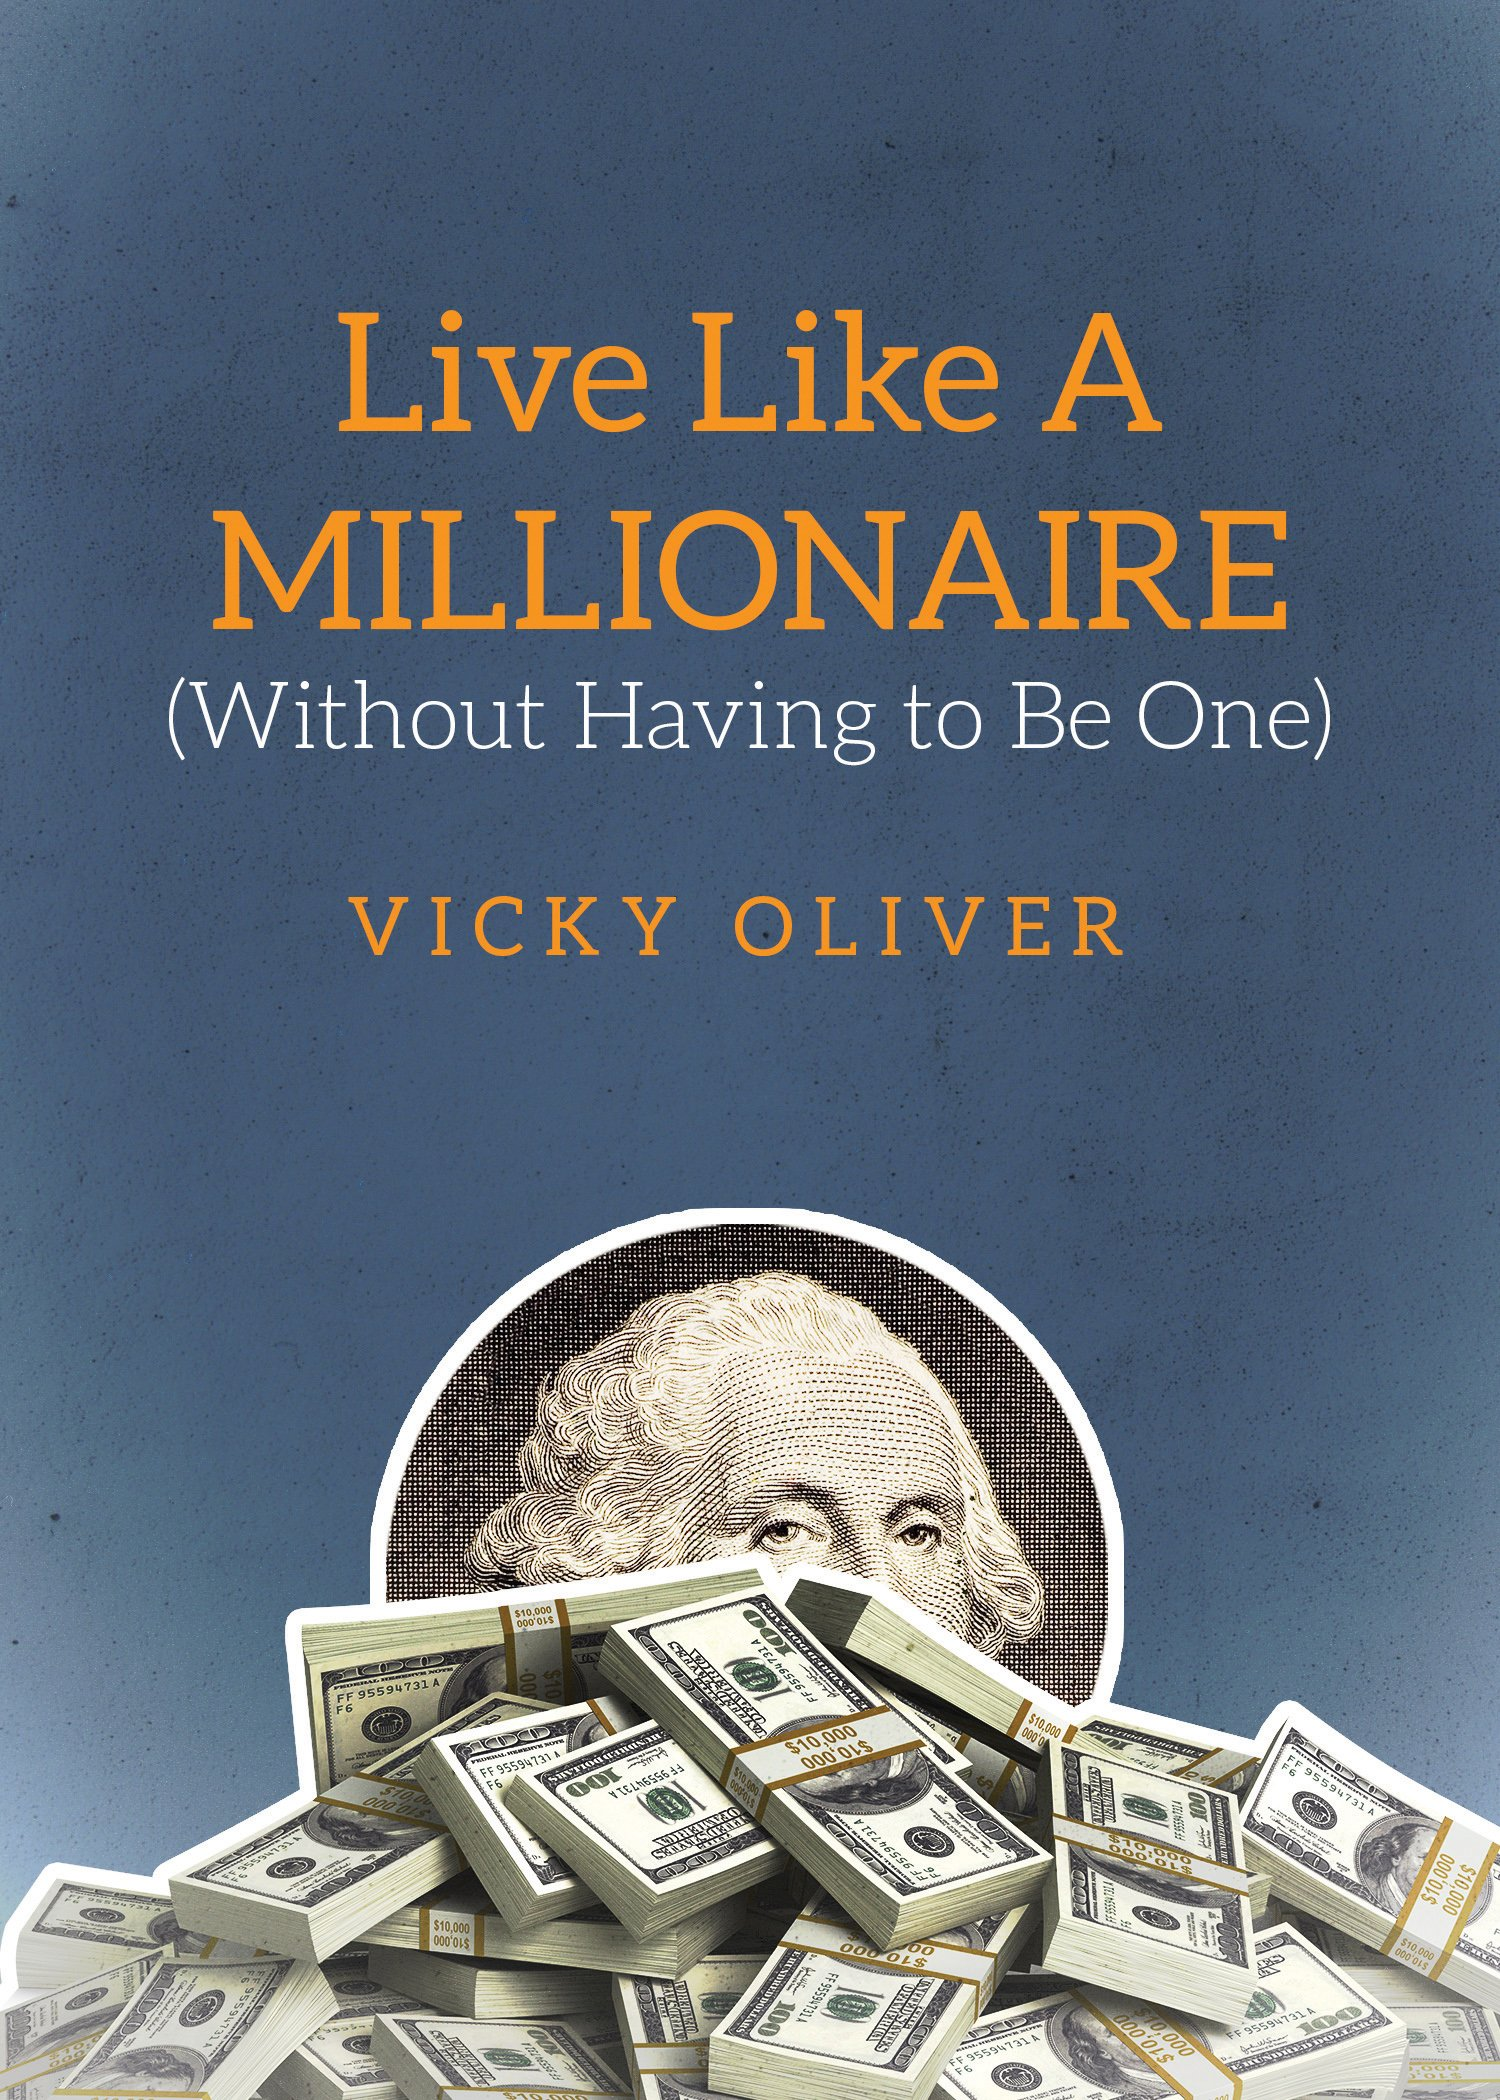 amazon com live like a millionaire out having to be one amazon com live like a millionaire out having to be one 9781629147536 vicky oliver books